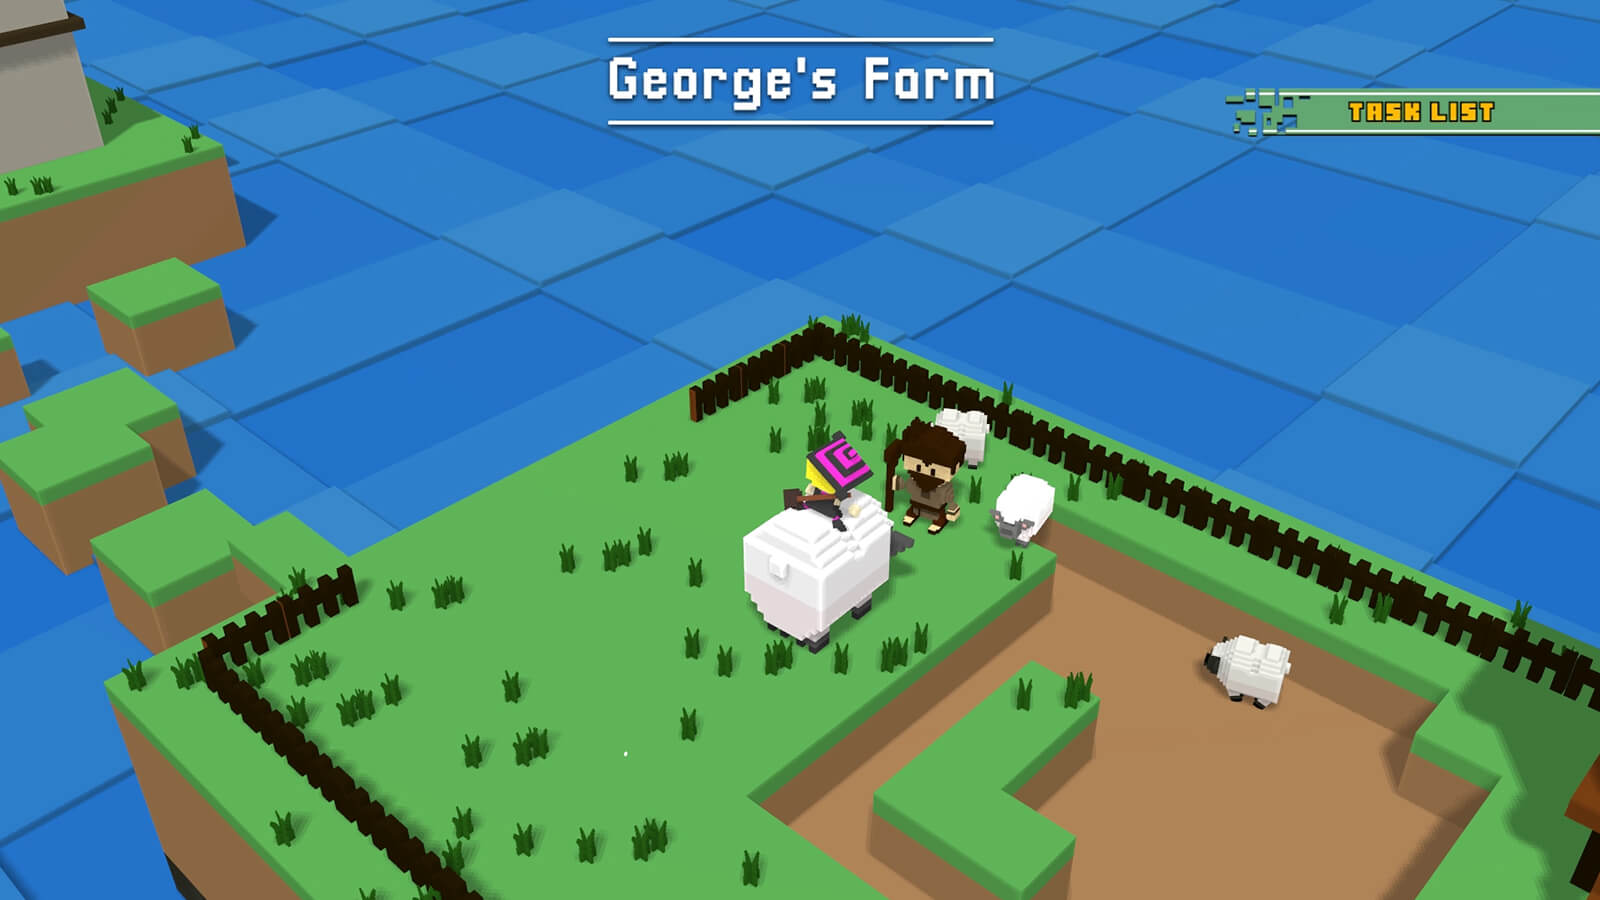 """A witch character rides on top of a sheep on an island marked as """"George's Farm"""""""